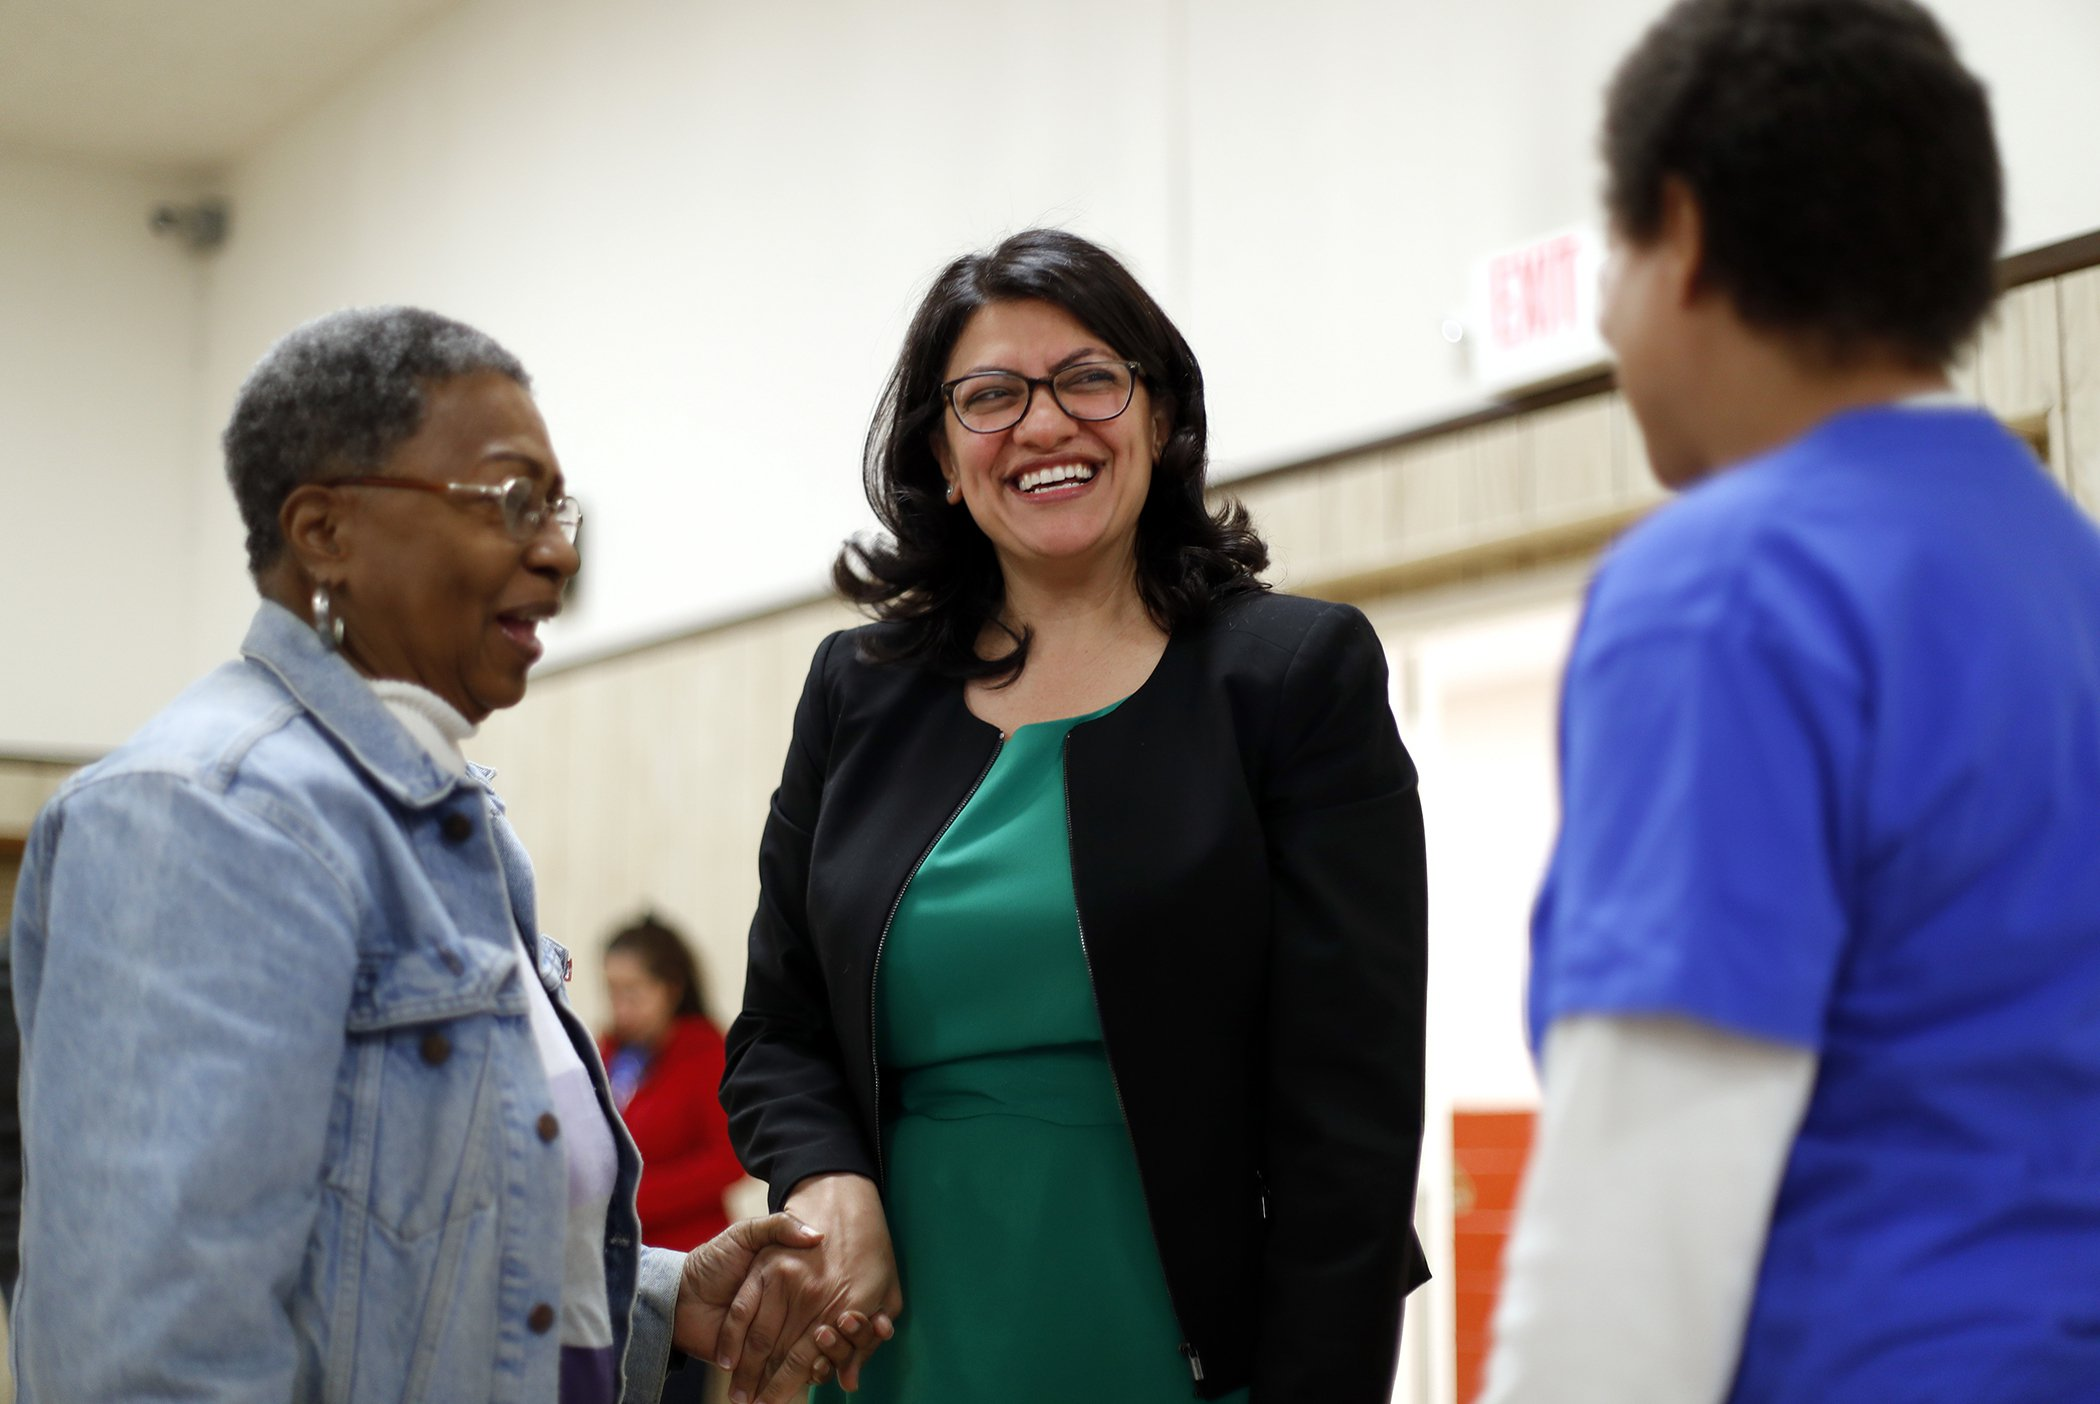 Rashida-Tlaib-Michigan-Election-2018.jpg